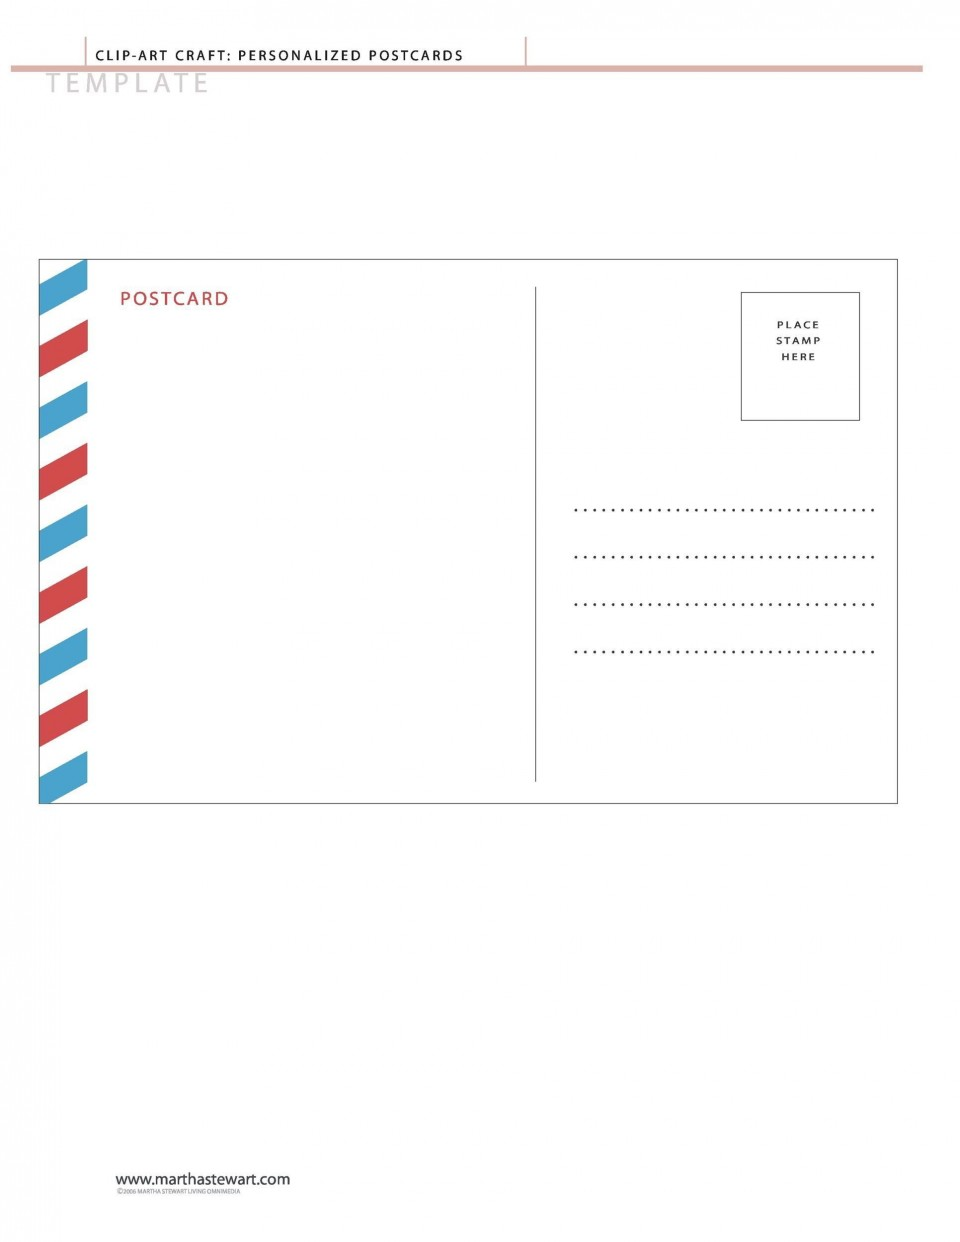 004 Top Postcard Layout For Microsoft Word Highest Quality  Busines Template960